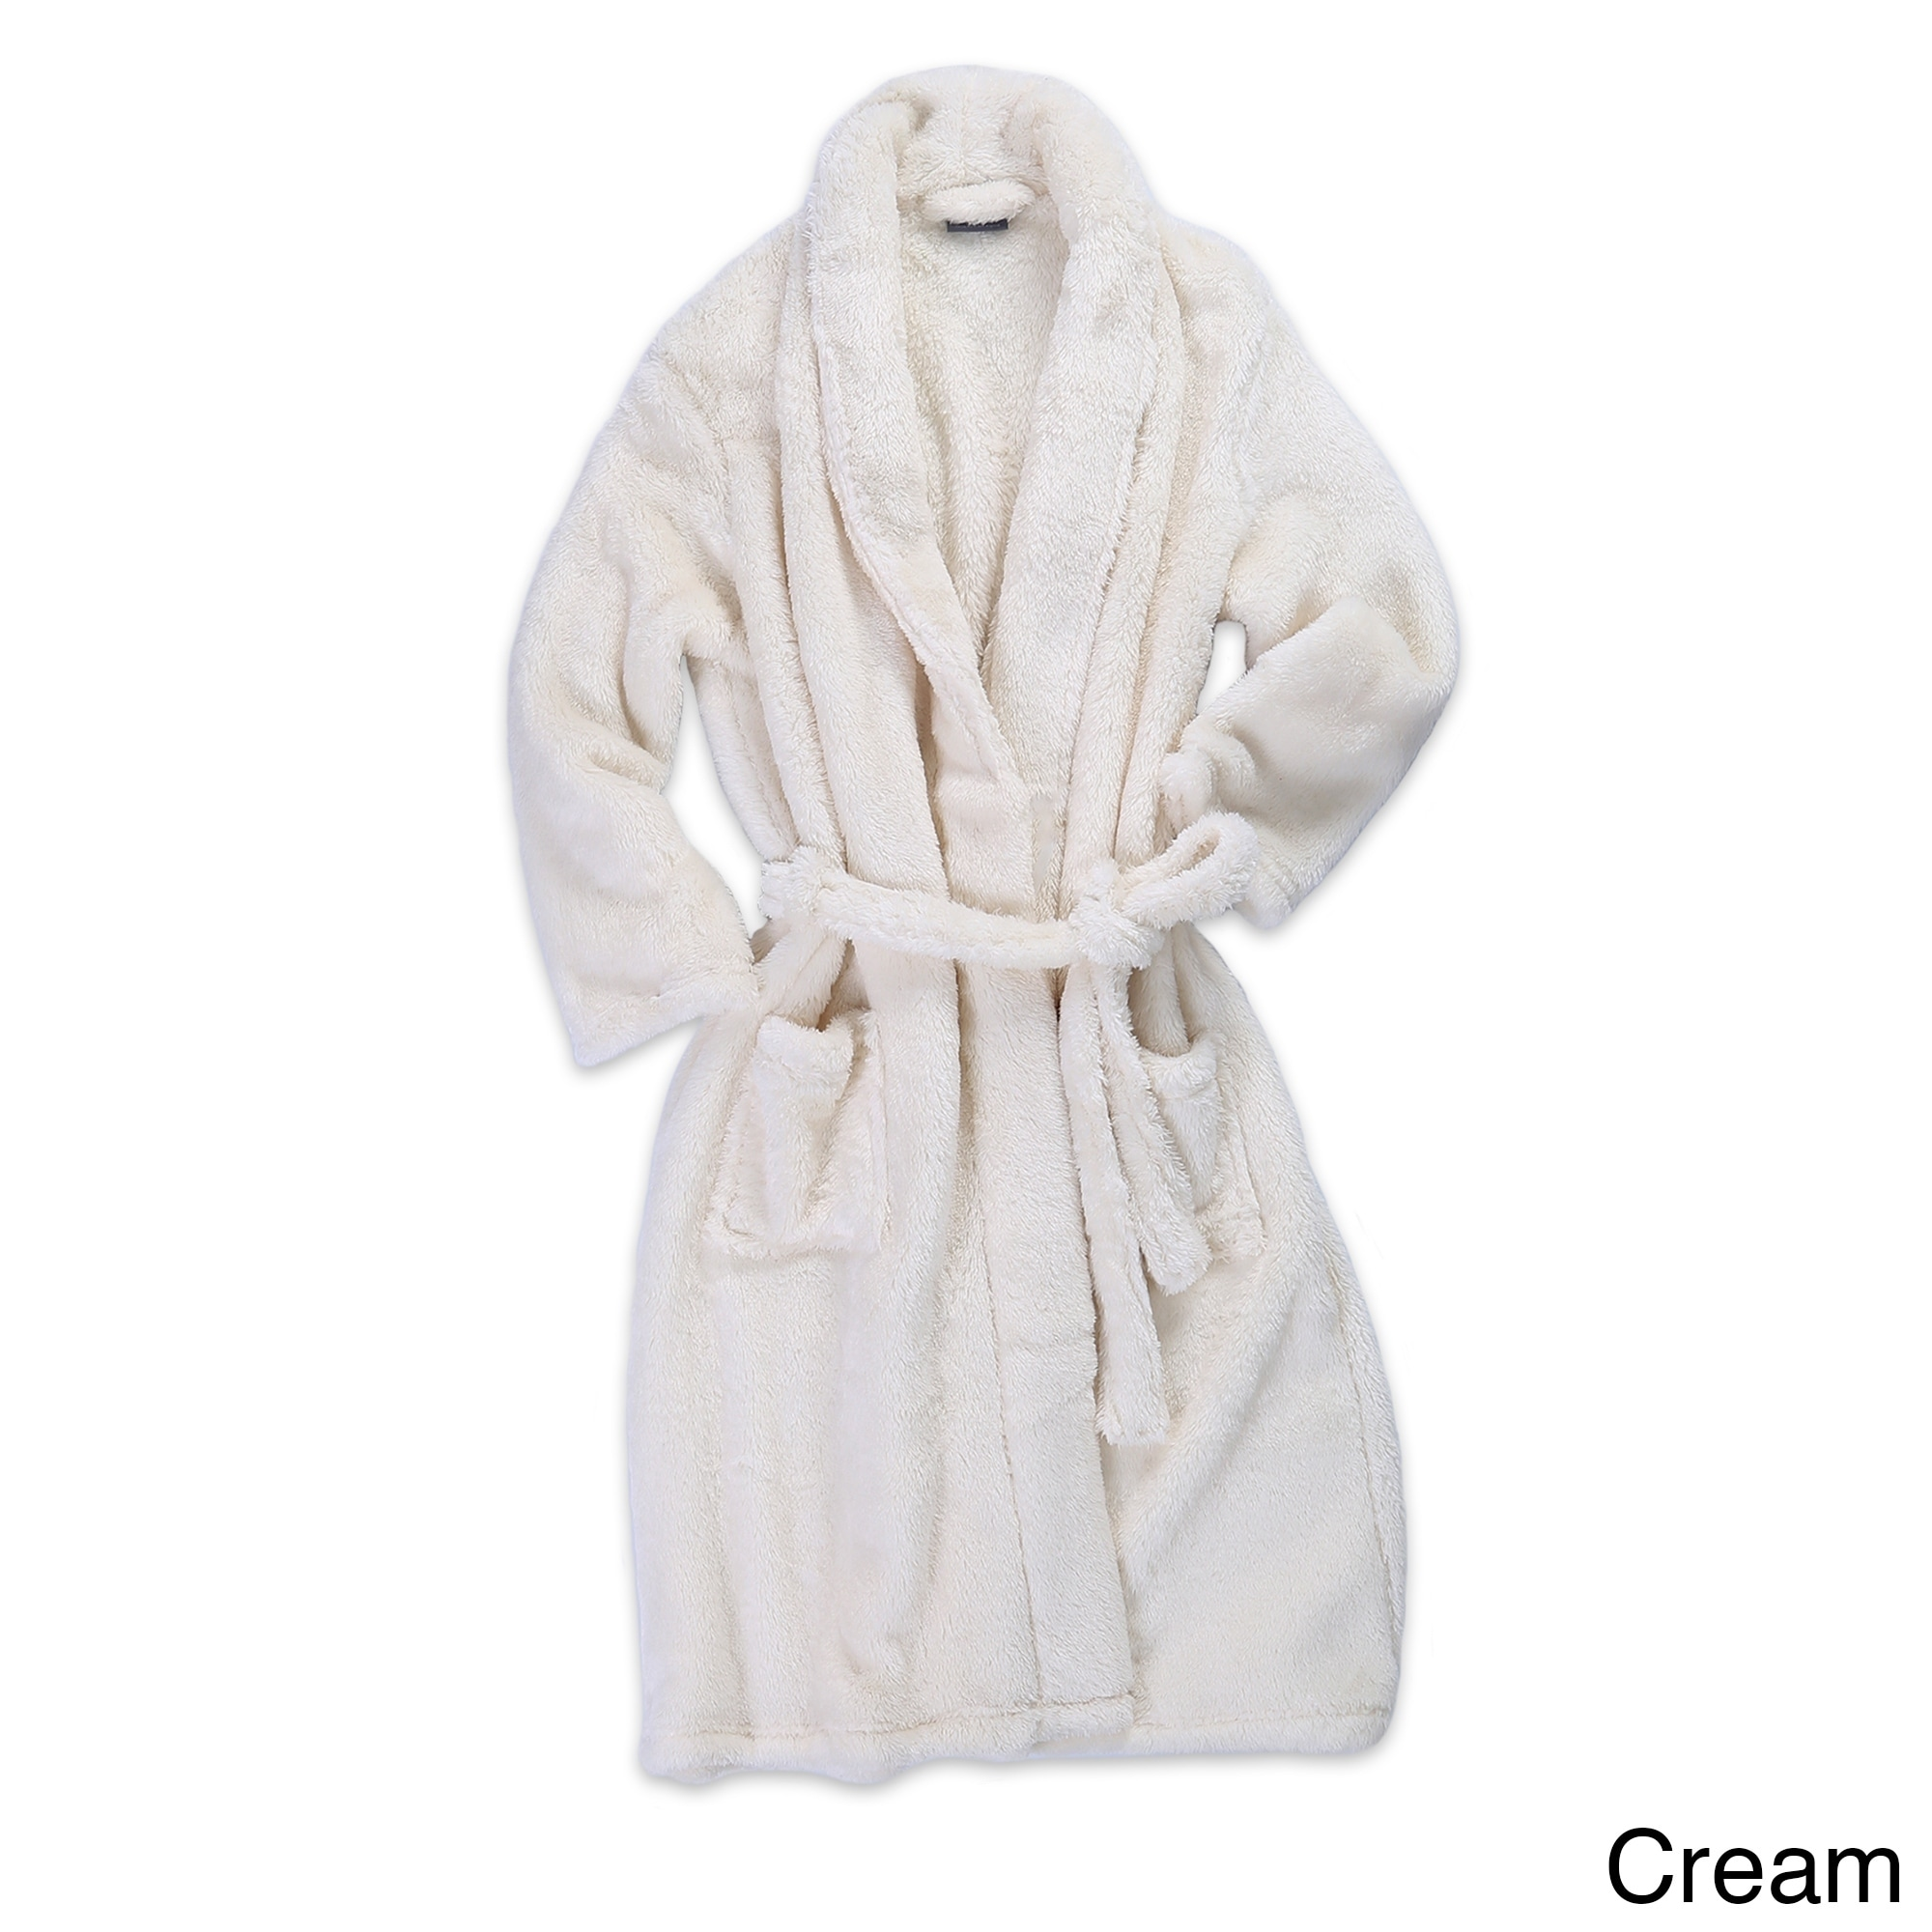 Berkshire Blanket And Home Extra Fluffy Plush Robe On Sale Overstock 21117172 Cream L Xl